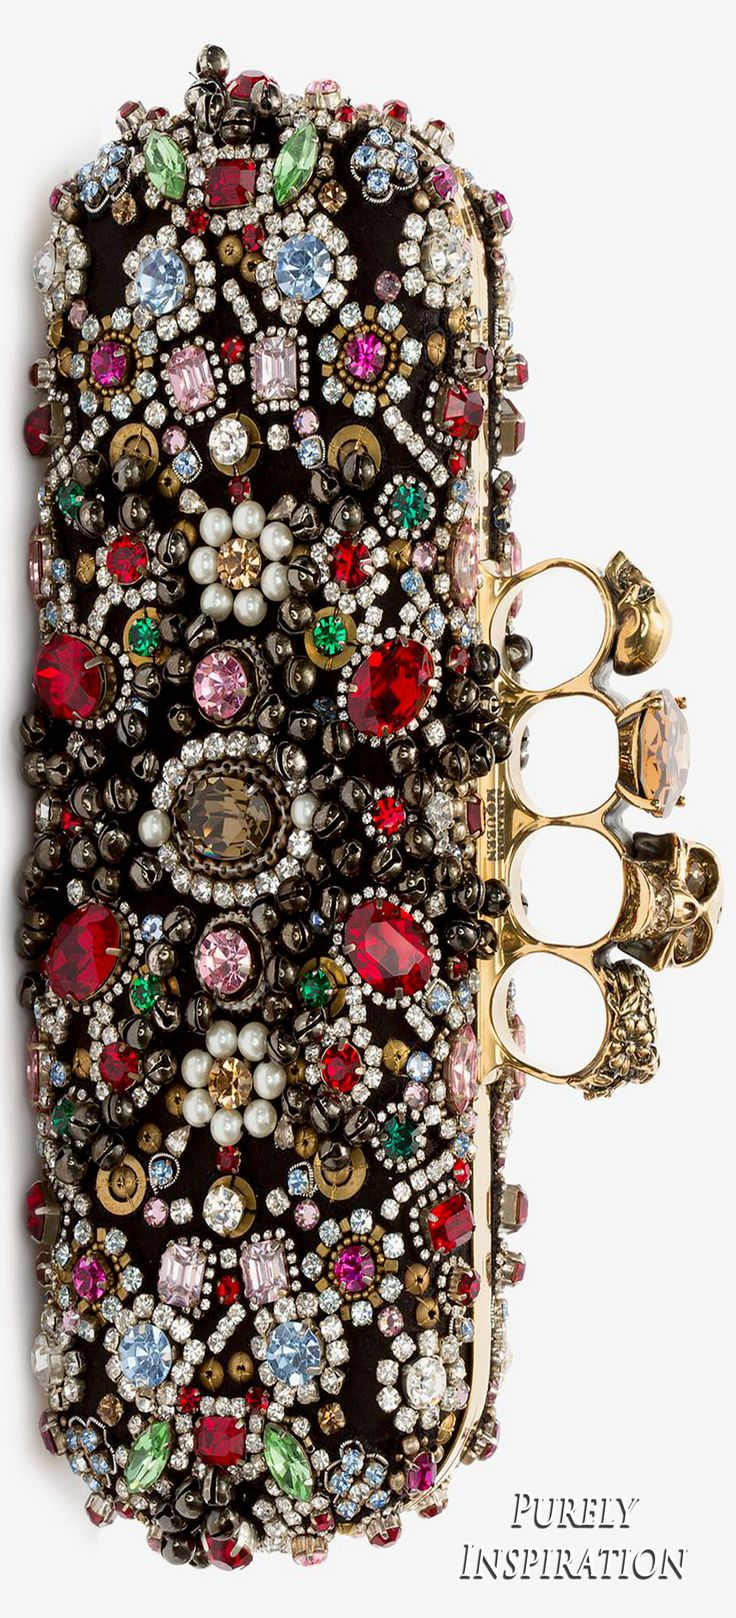 Alexander McQueen Jeweled Knuckle Box Clutch | Purely Inspiration